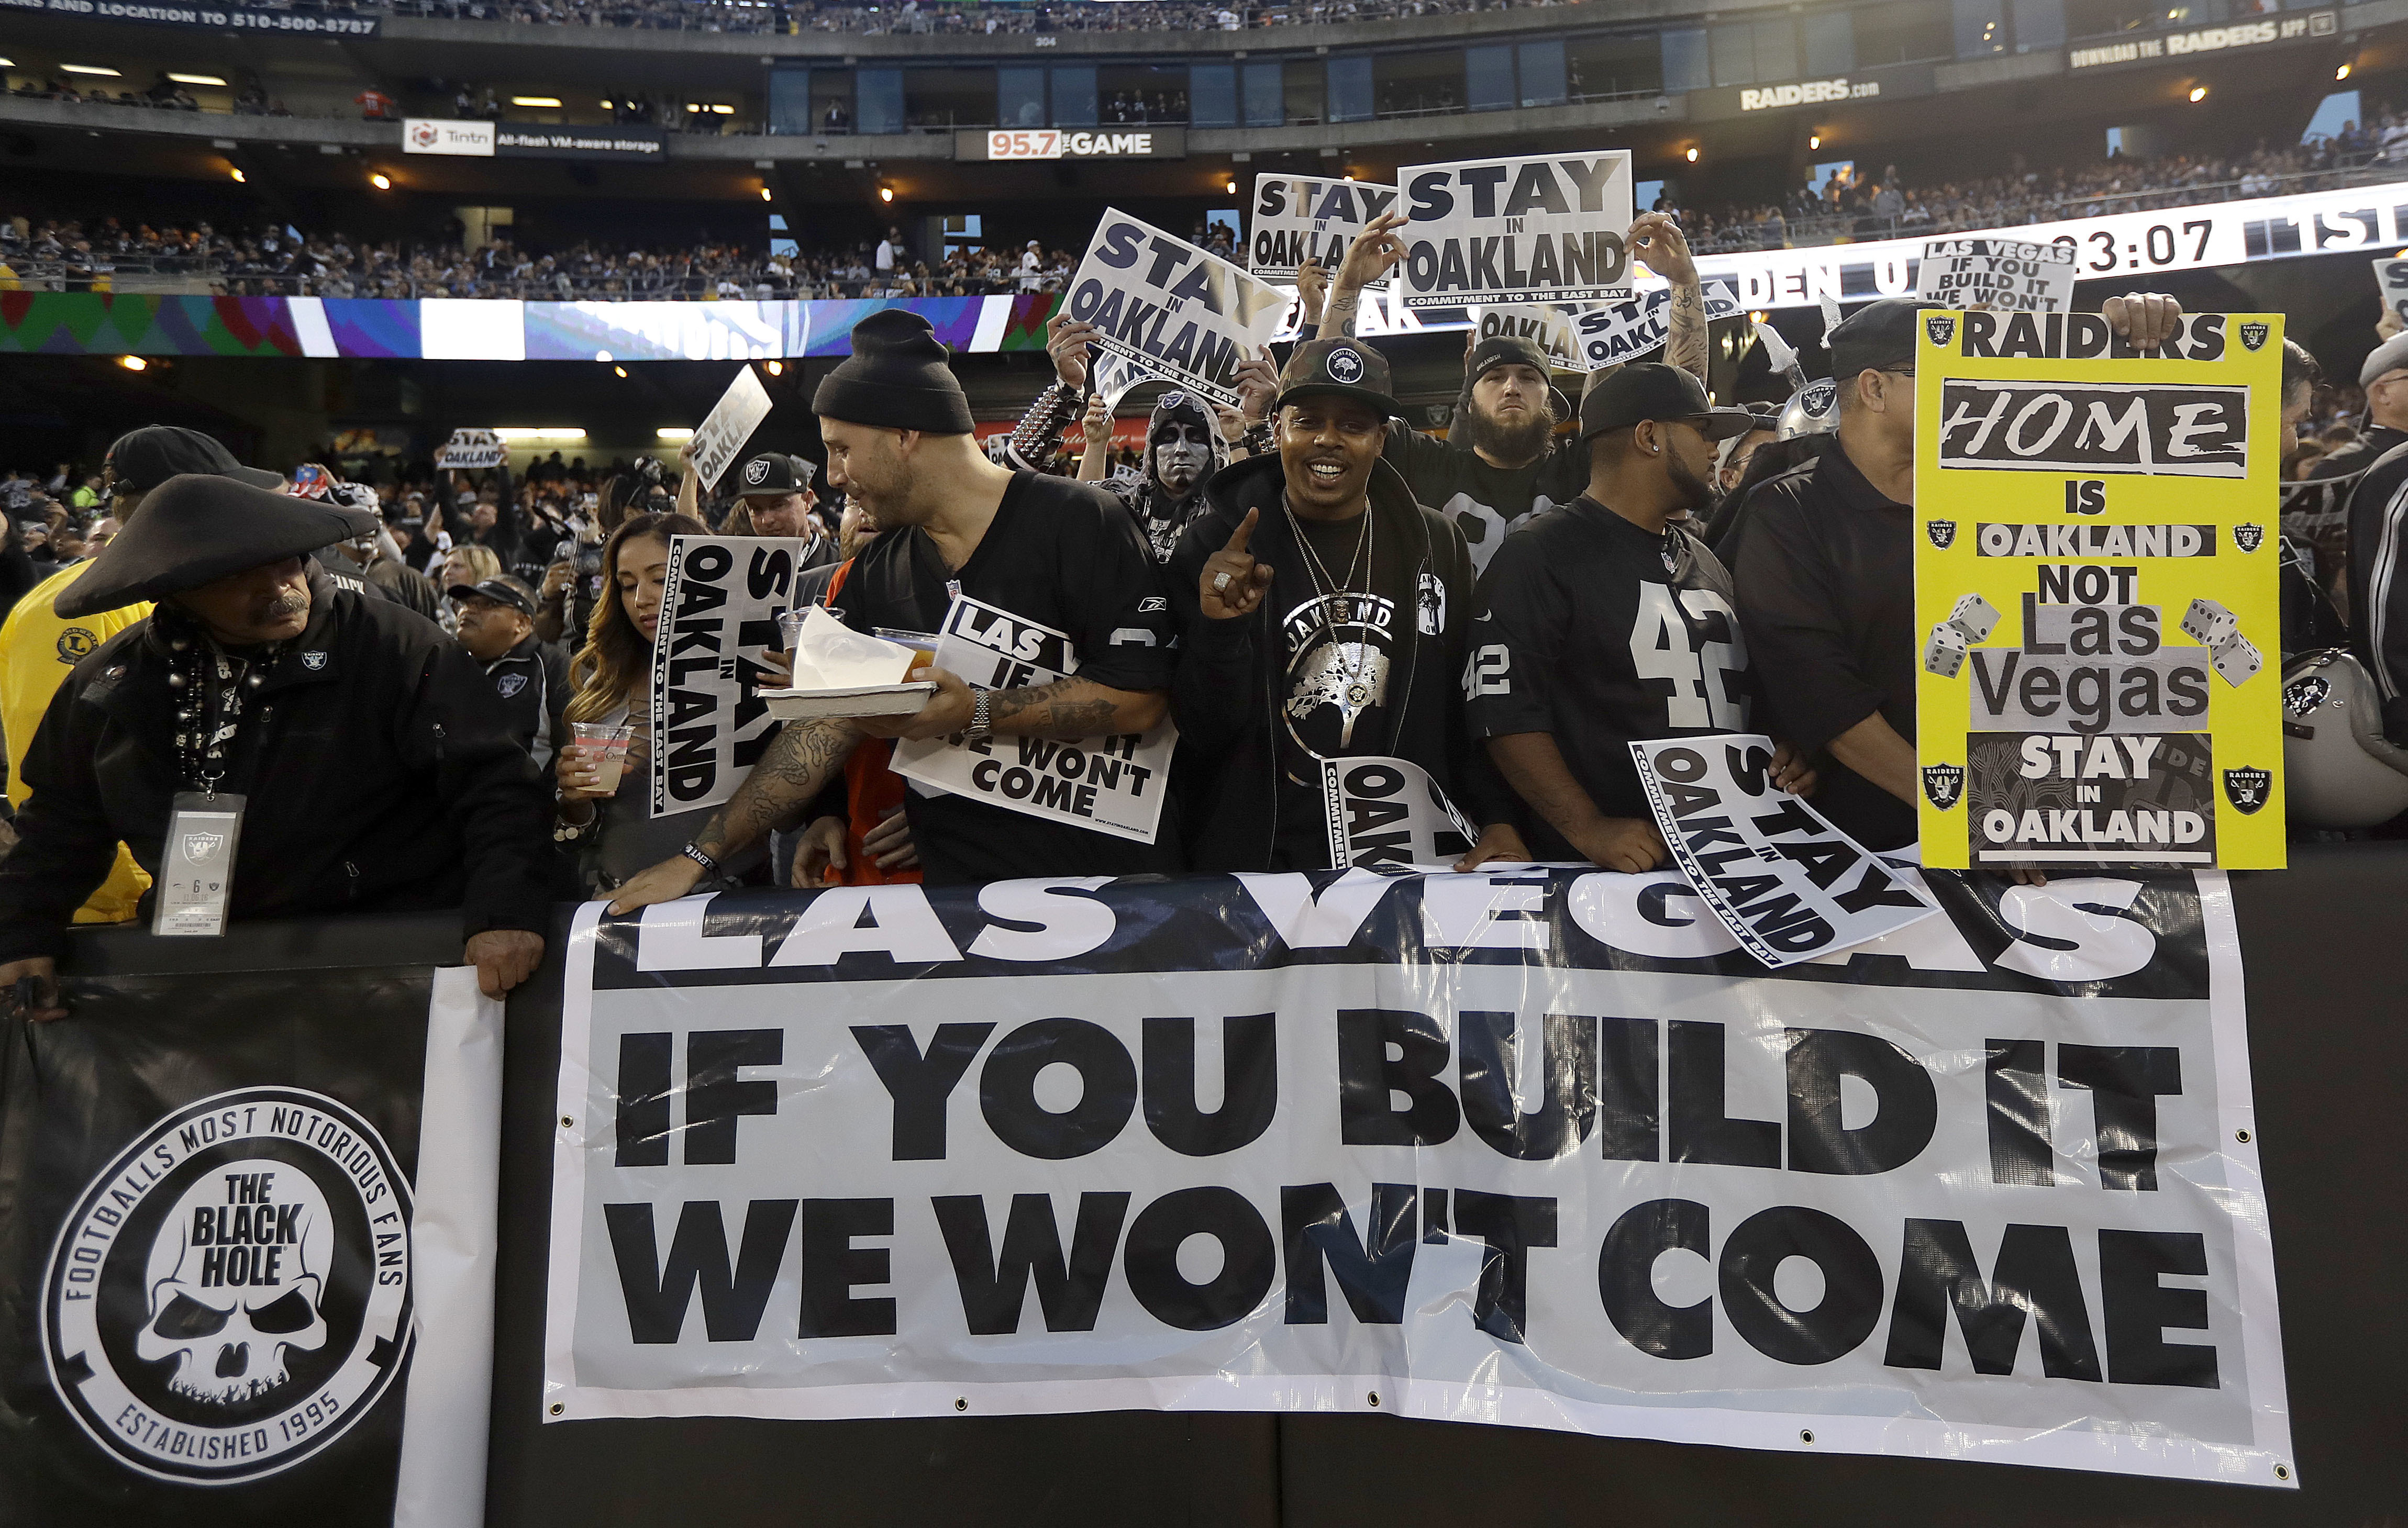 FILE - In this Nov. 6, 2016, file photo, Oakland Raiders fans hold up signs about the team's possible move to Las Vegas during an NFL football game between the Raiders and the Denver Broncos in Oakland, Calif. City and county officials are expected to vot